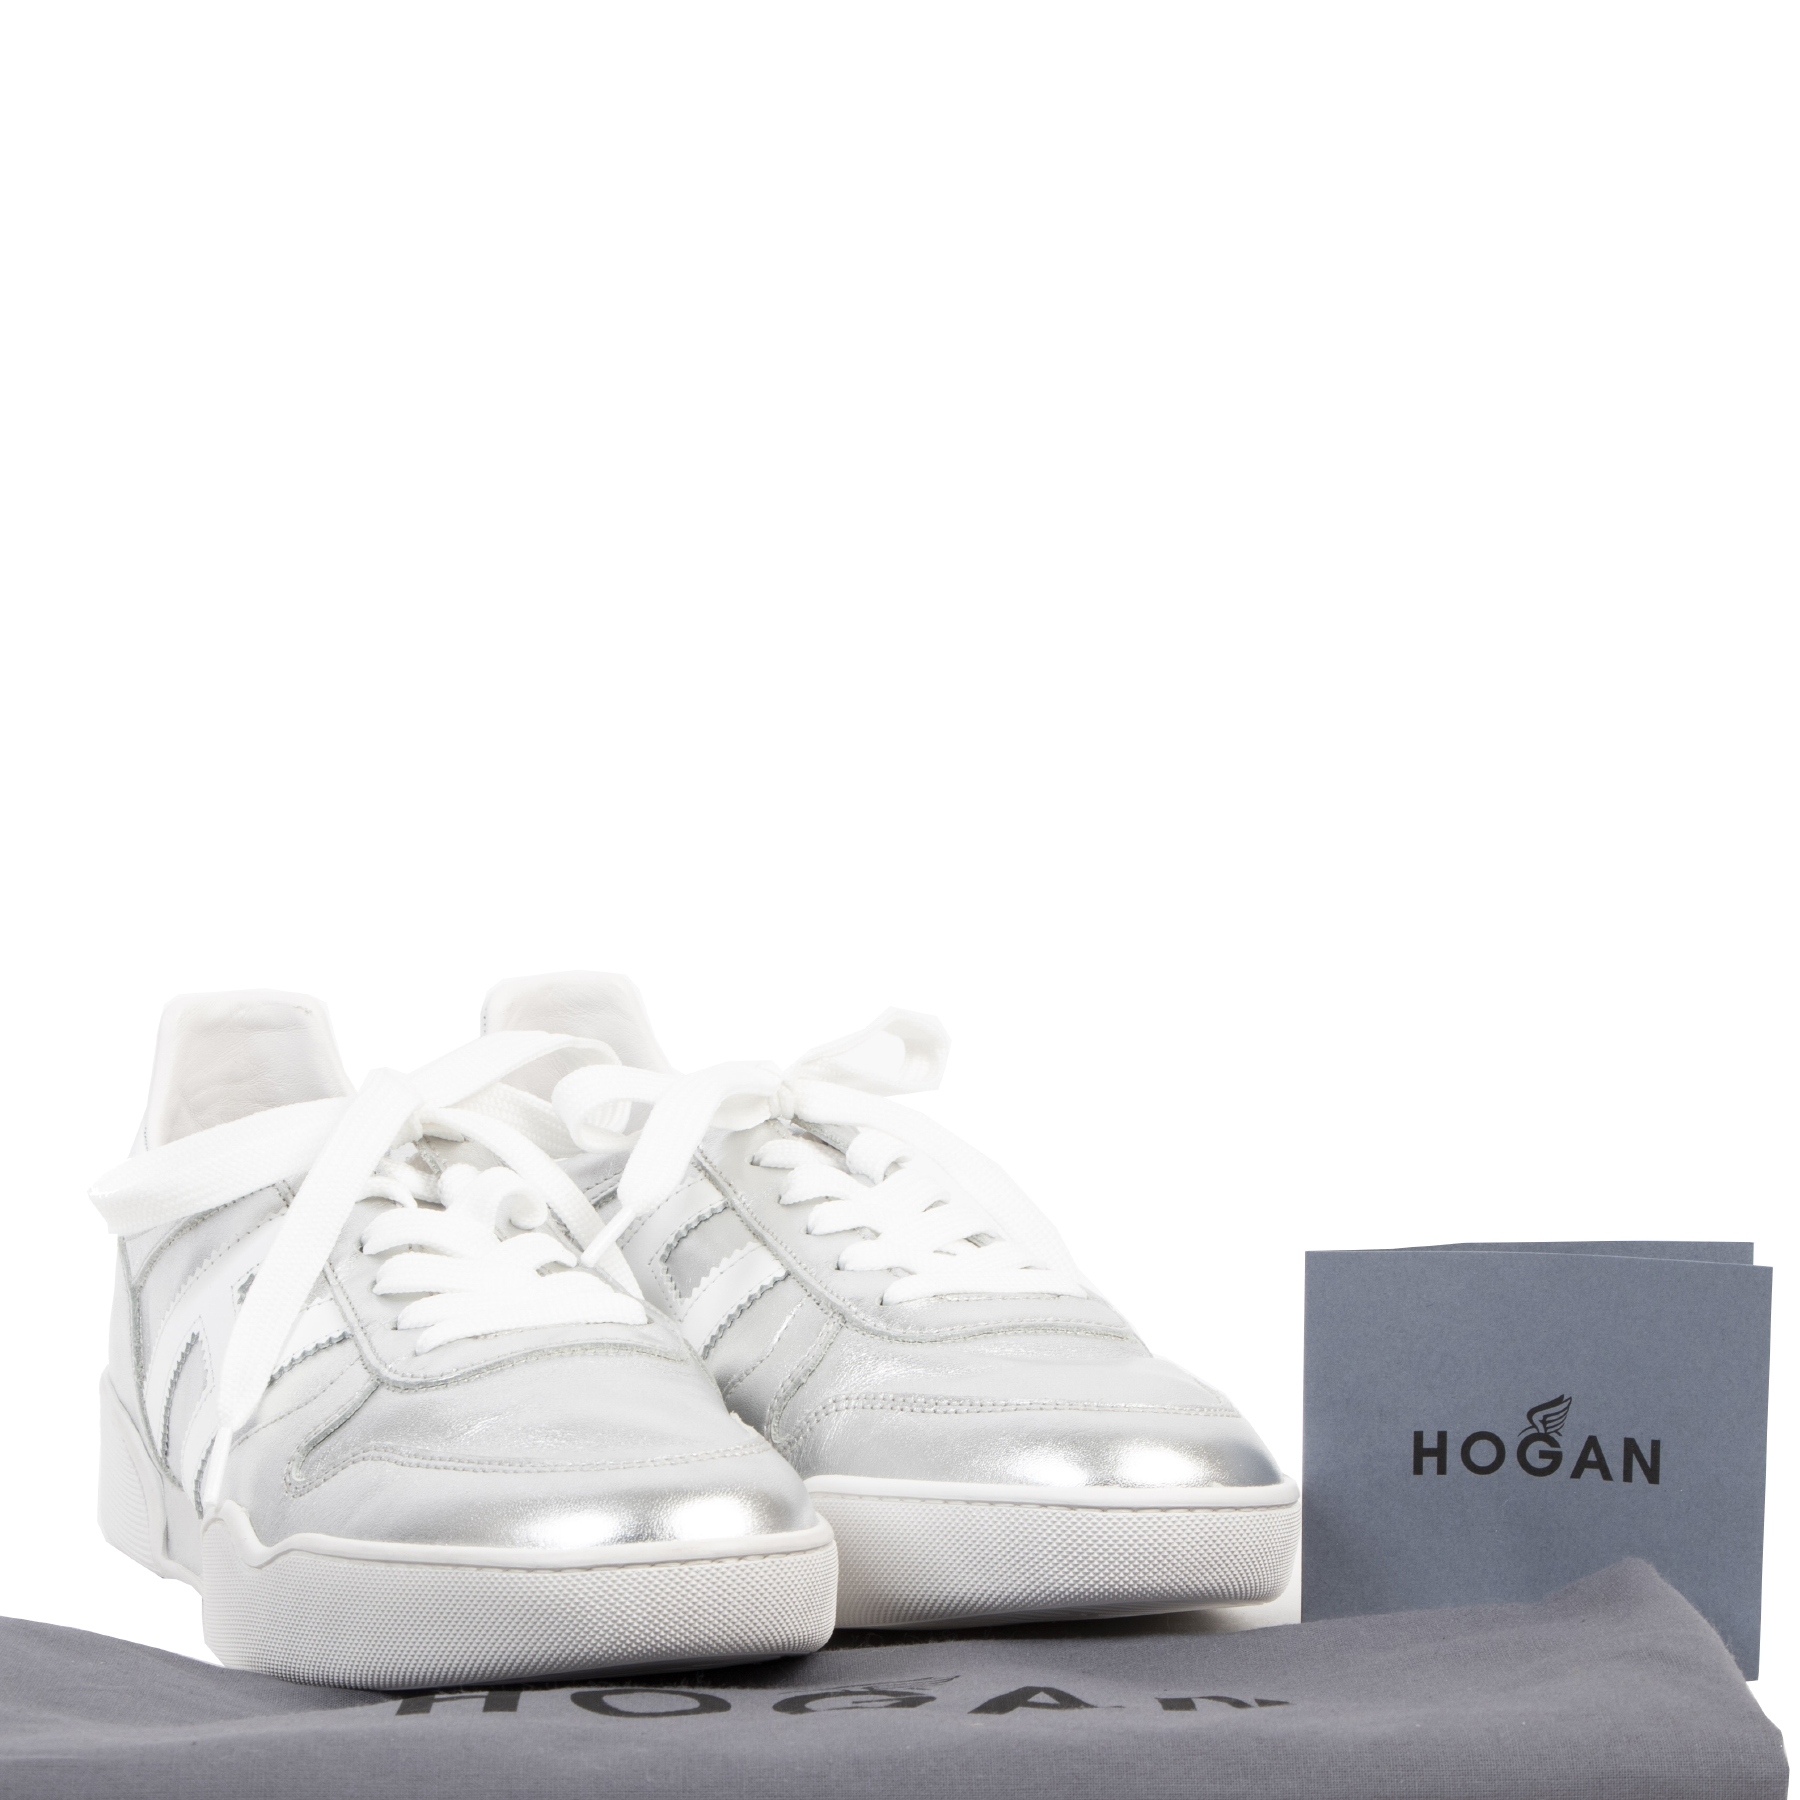 Authentic second-hand vintage Hogan Silver Leather Sneakers - Size 40 buy online webshop LabelLOV